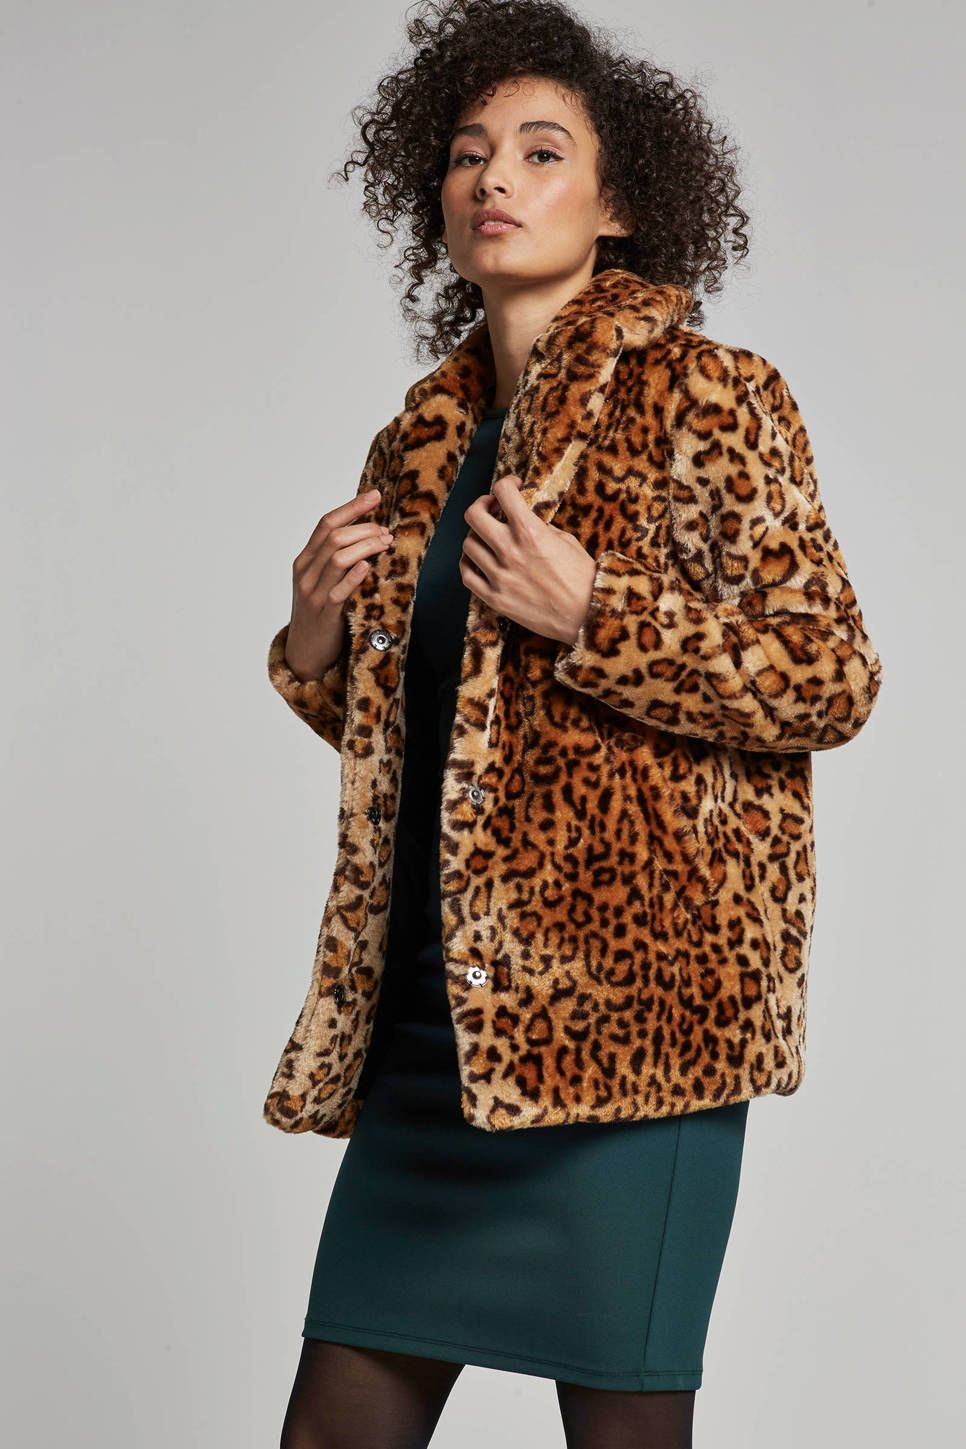 Winterjas Panterprint.Jas Met All Over Panterprint Trend Dierenprint Blazer Jackets